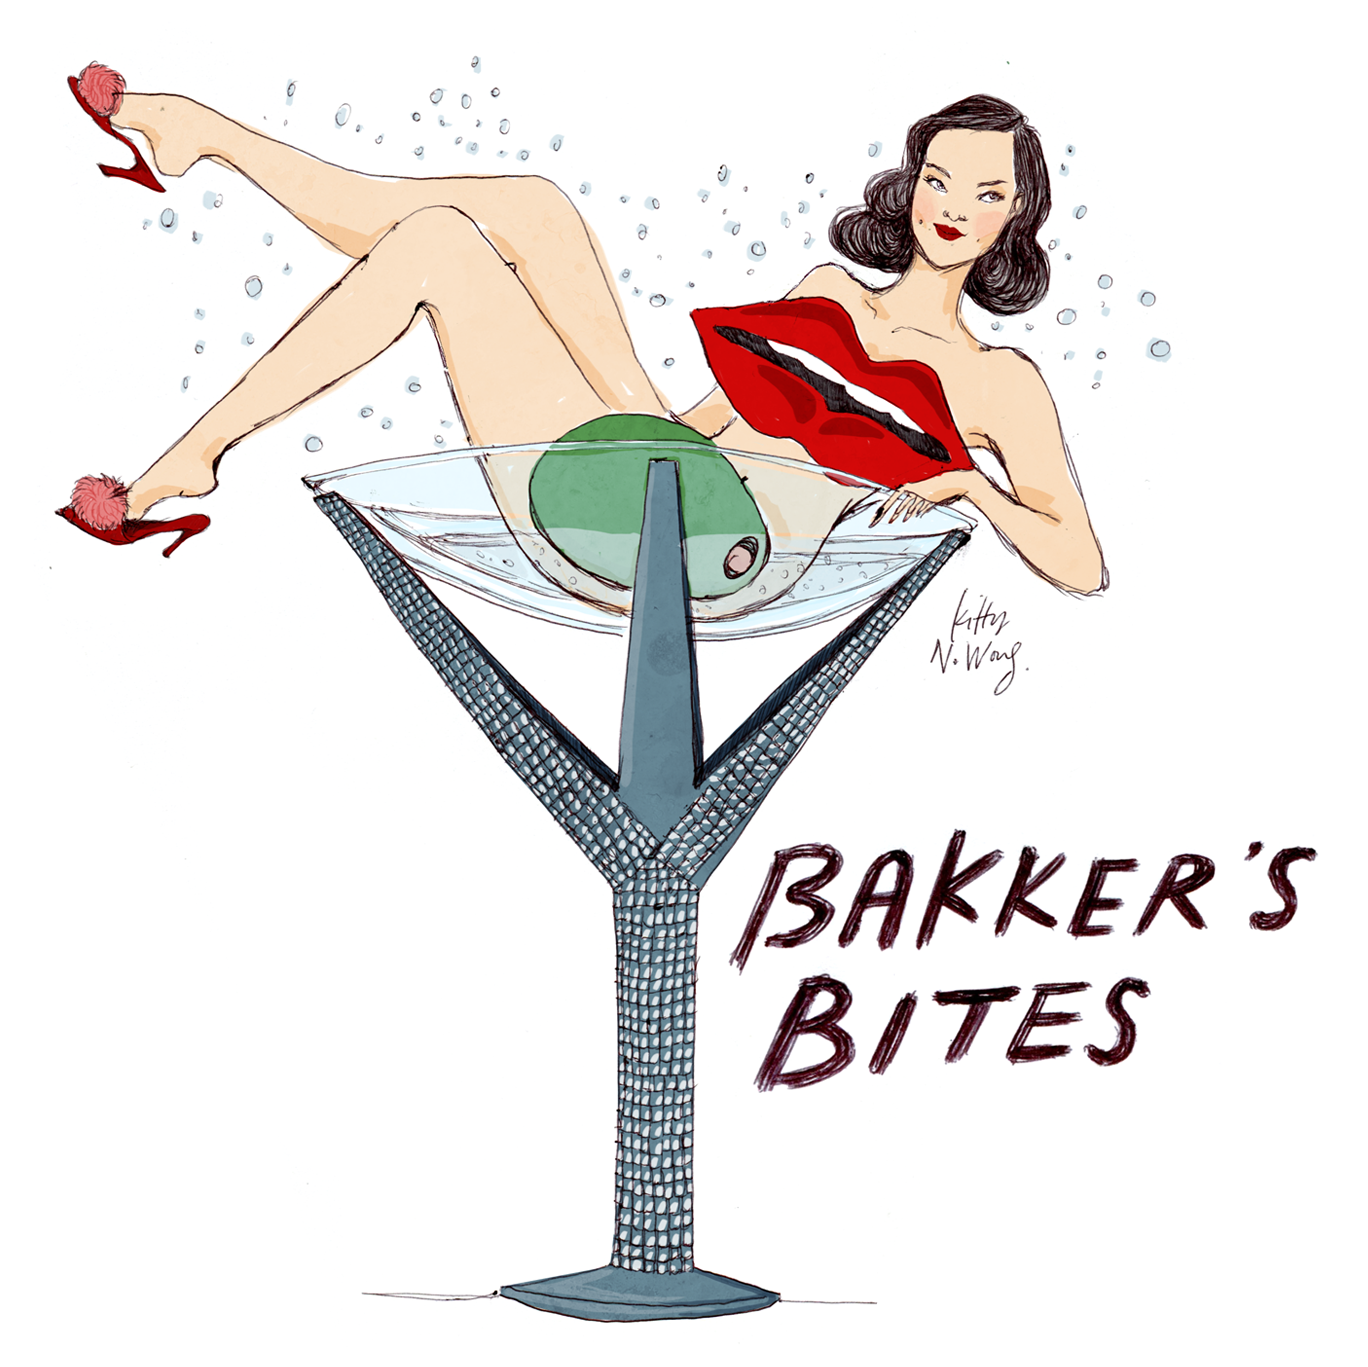 Kitty N. Wong / Bakker's Bites Fashion Illustration Dita Von Teese Martini Glass